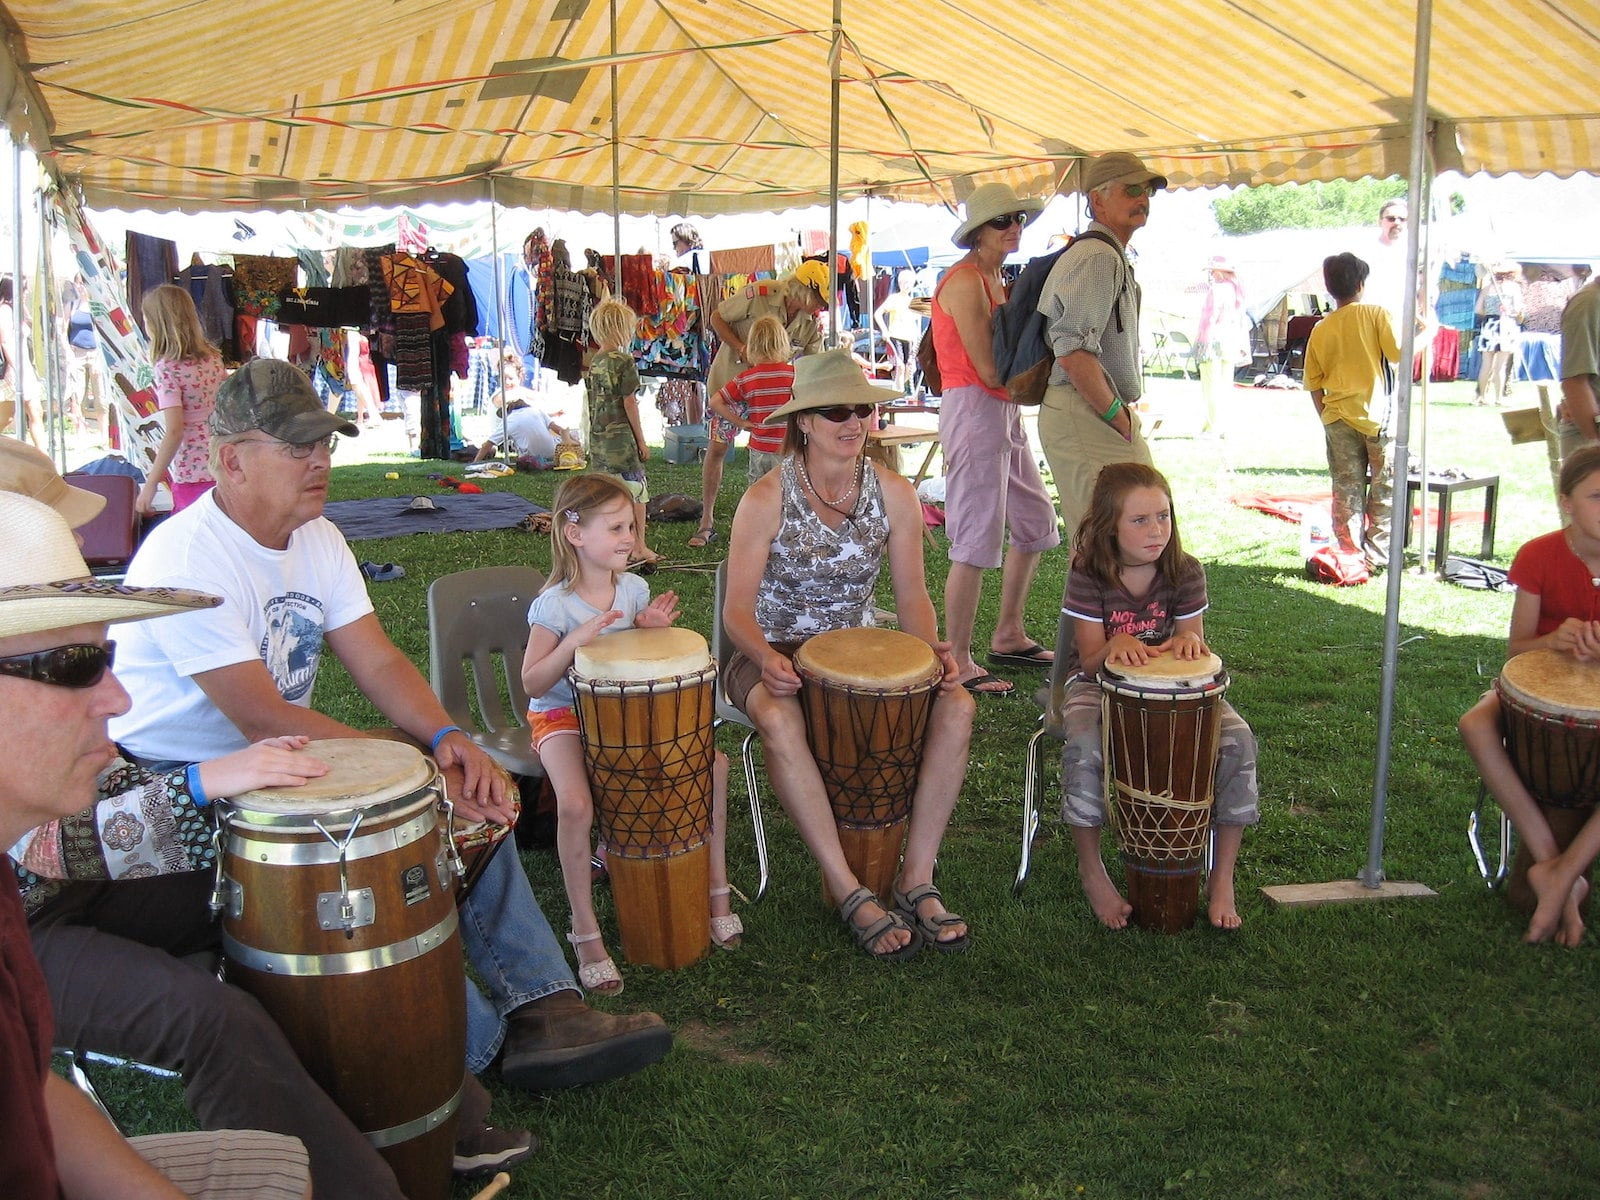 Image of people playing instruments at the Crestone Music Festival in Colorado